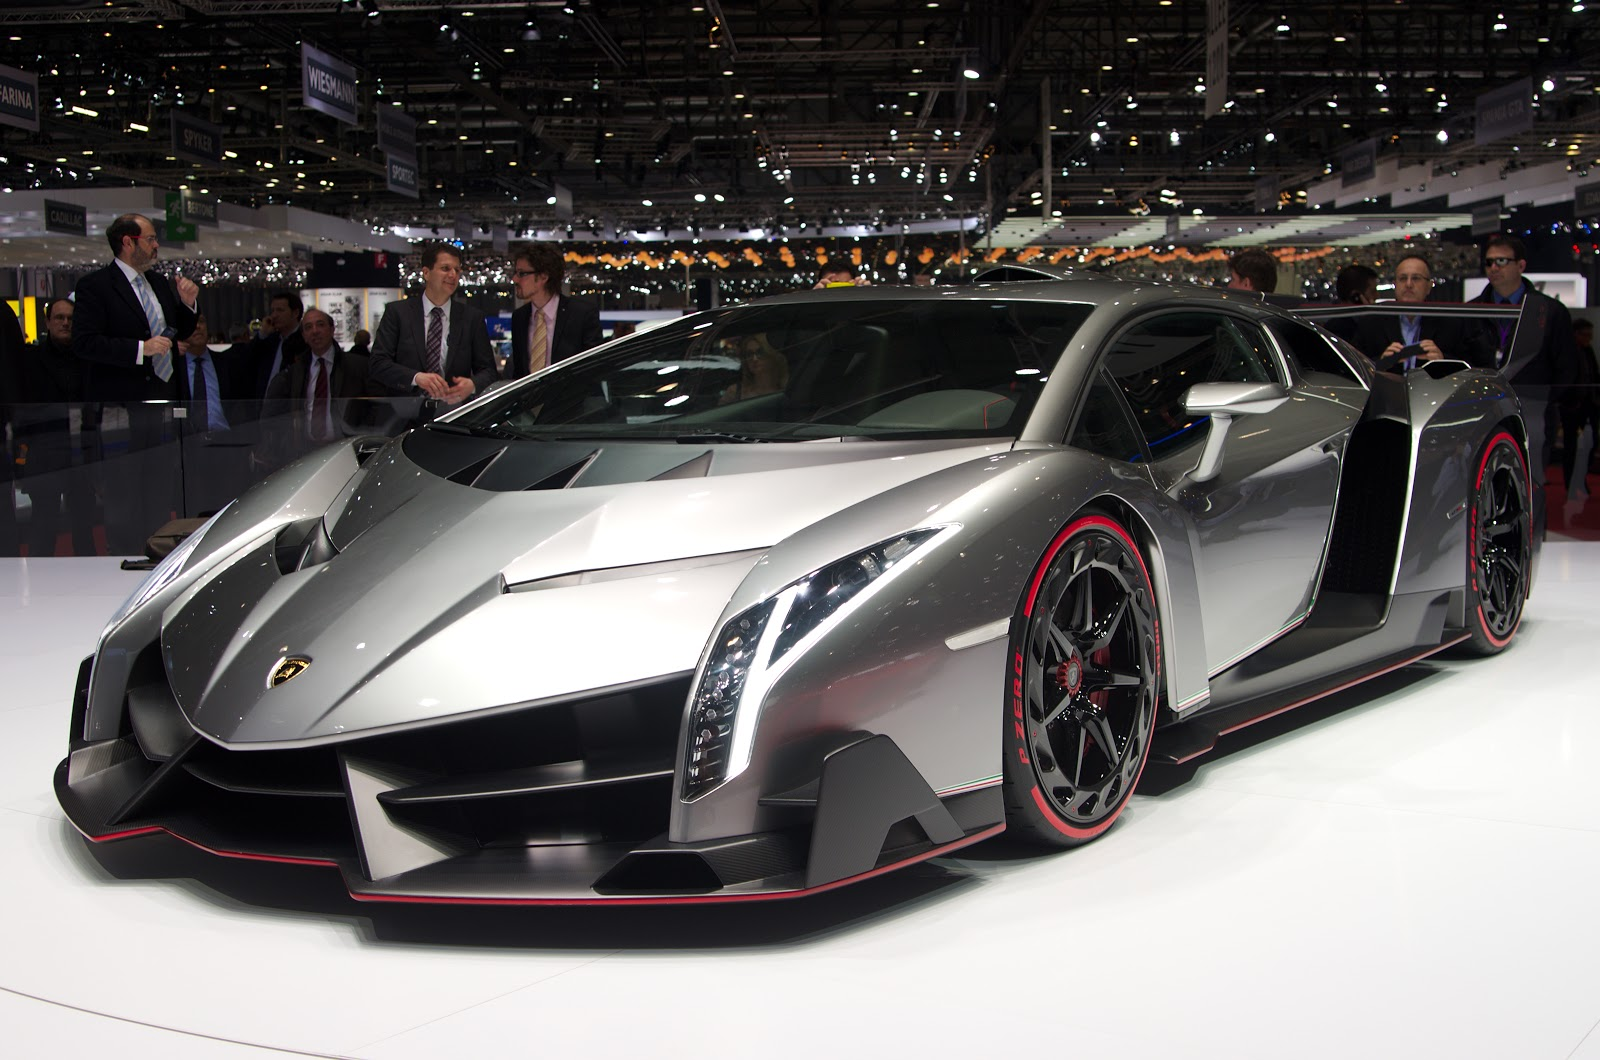 best motorcycle 2014 the lamborghini veneno as customized by lim rikmun and ernest li. Black Bedroom Furniture Sets. Home Design Ideas